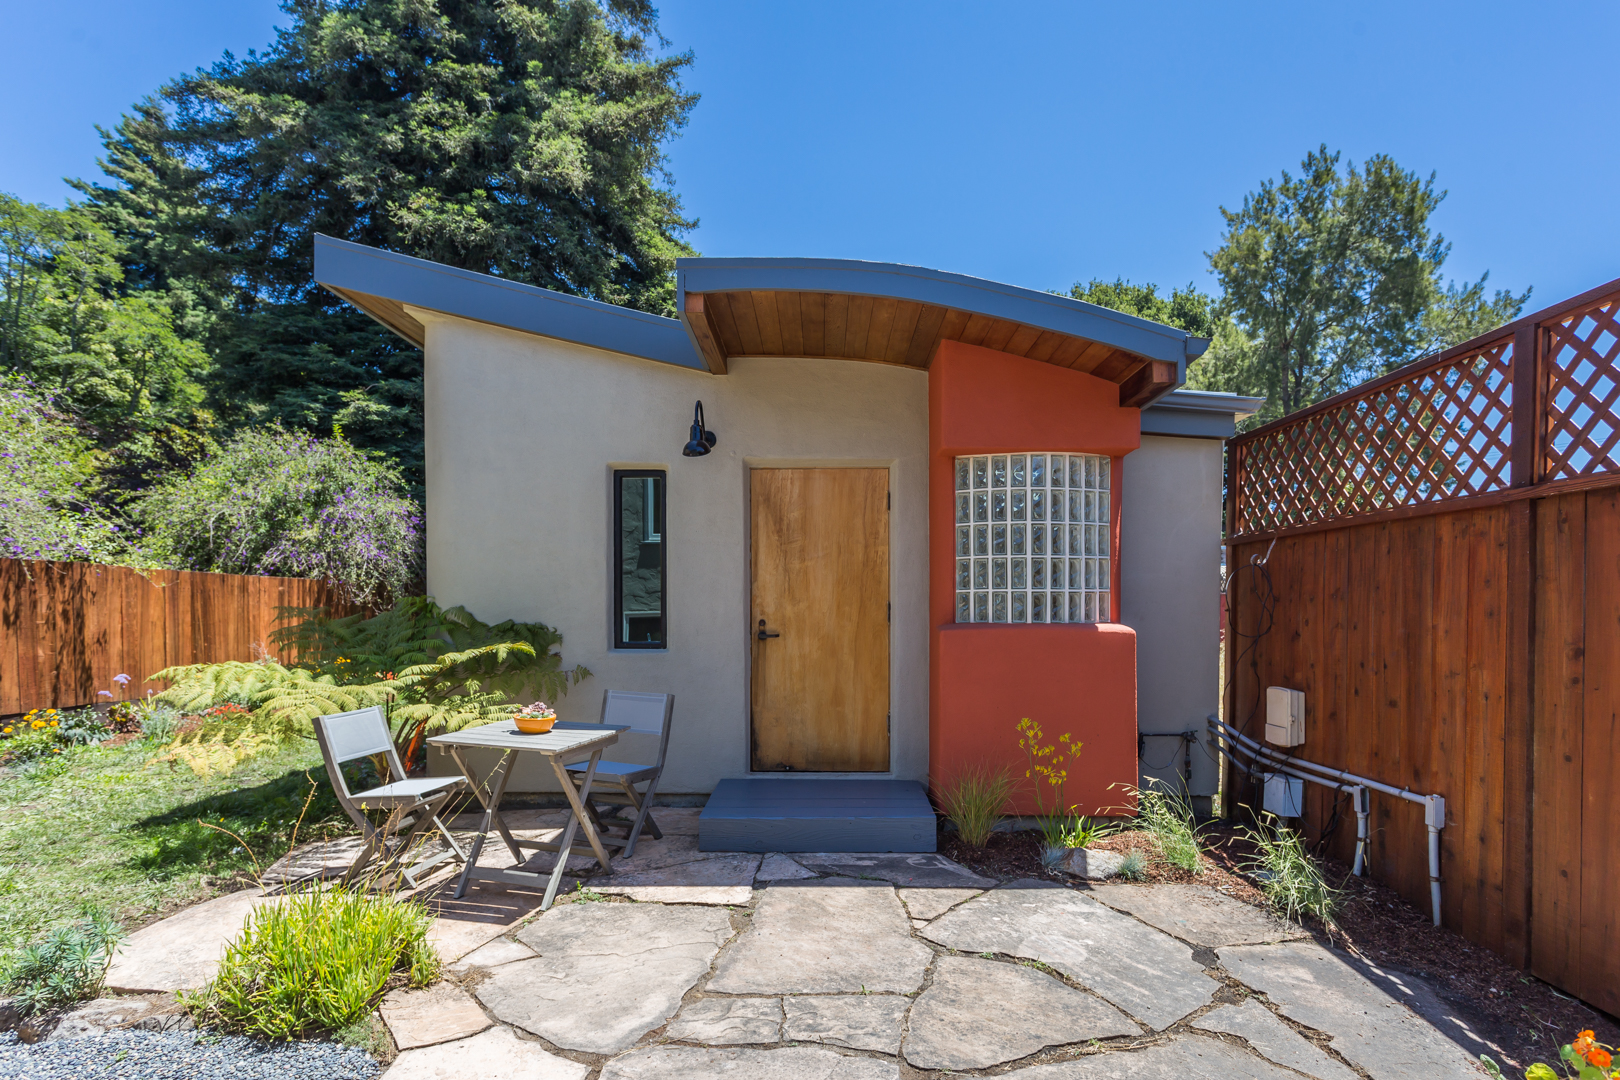 Home Sold in Berkeley, Westbrae